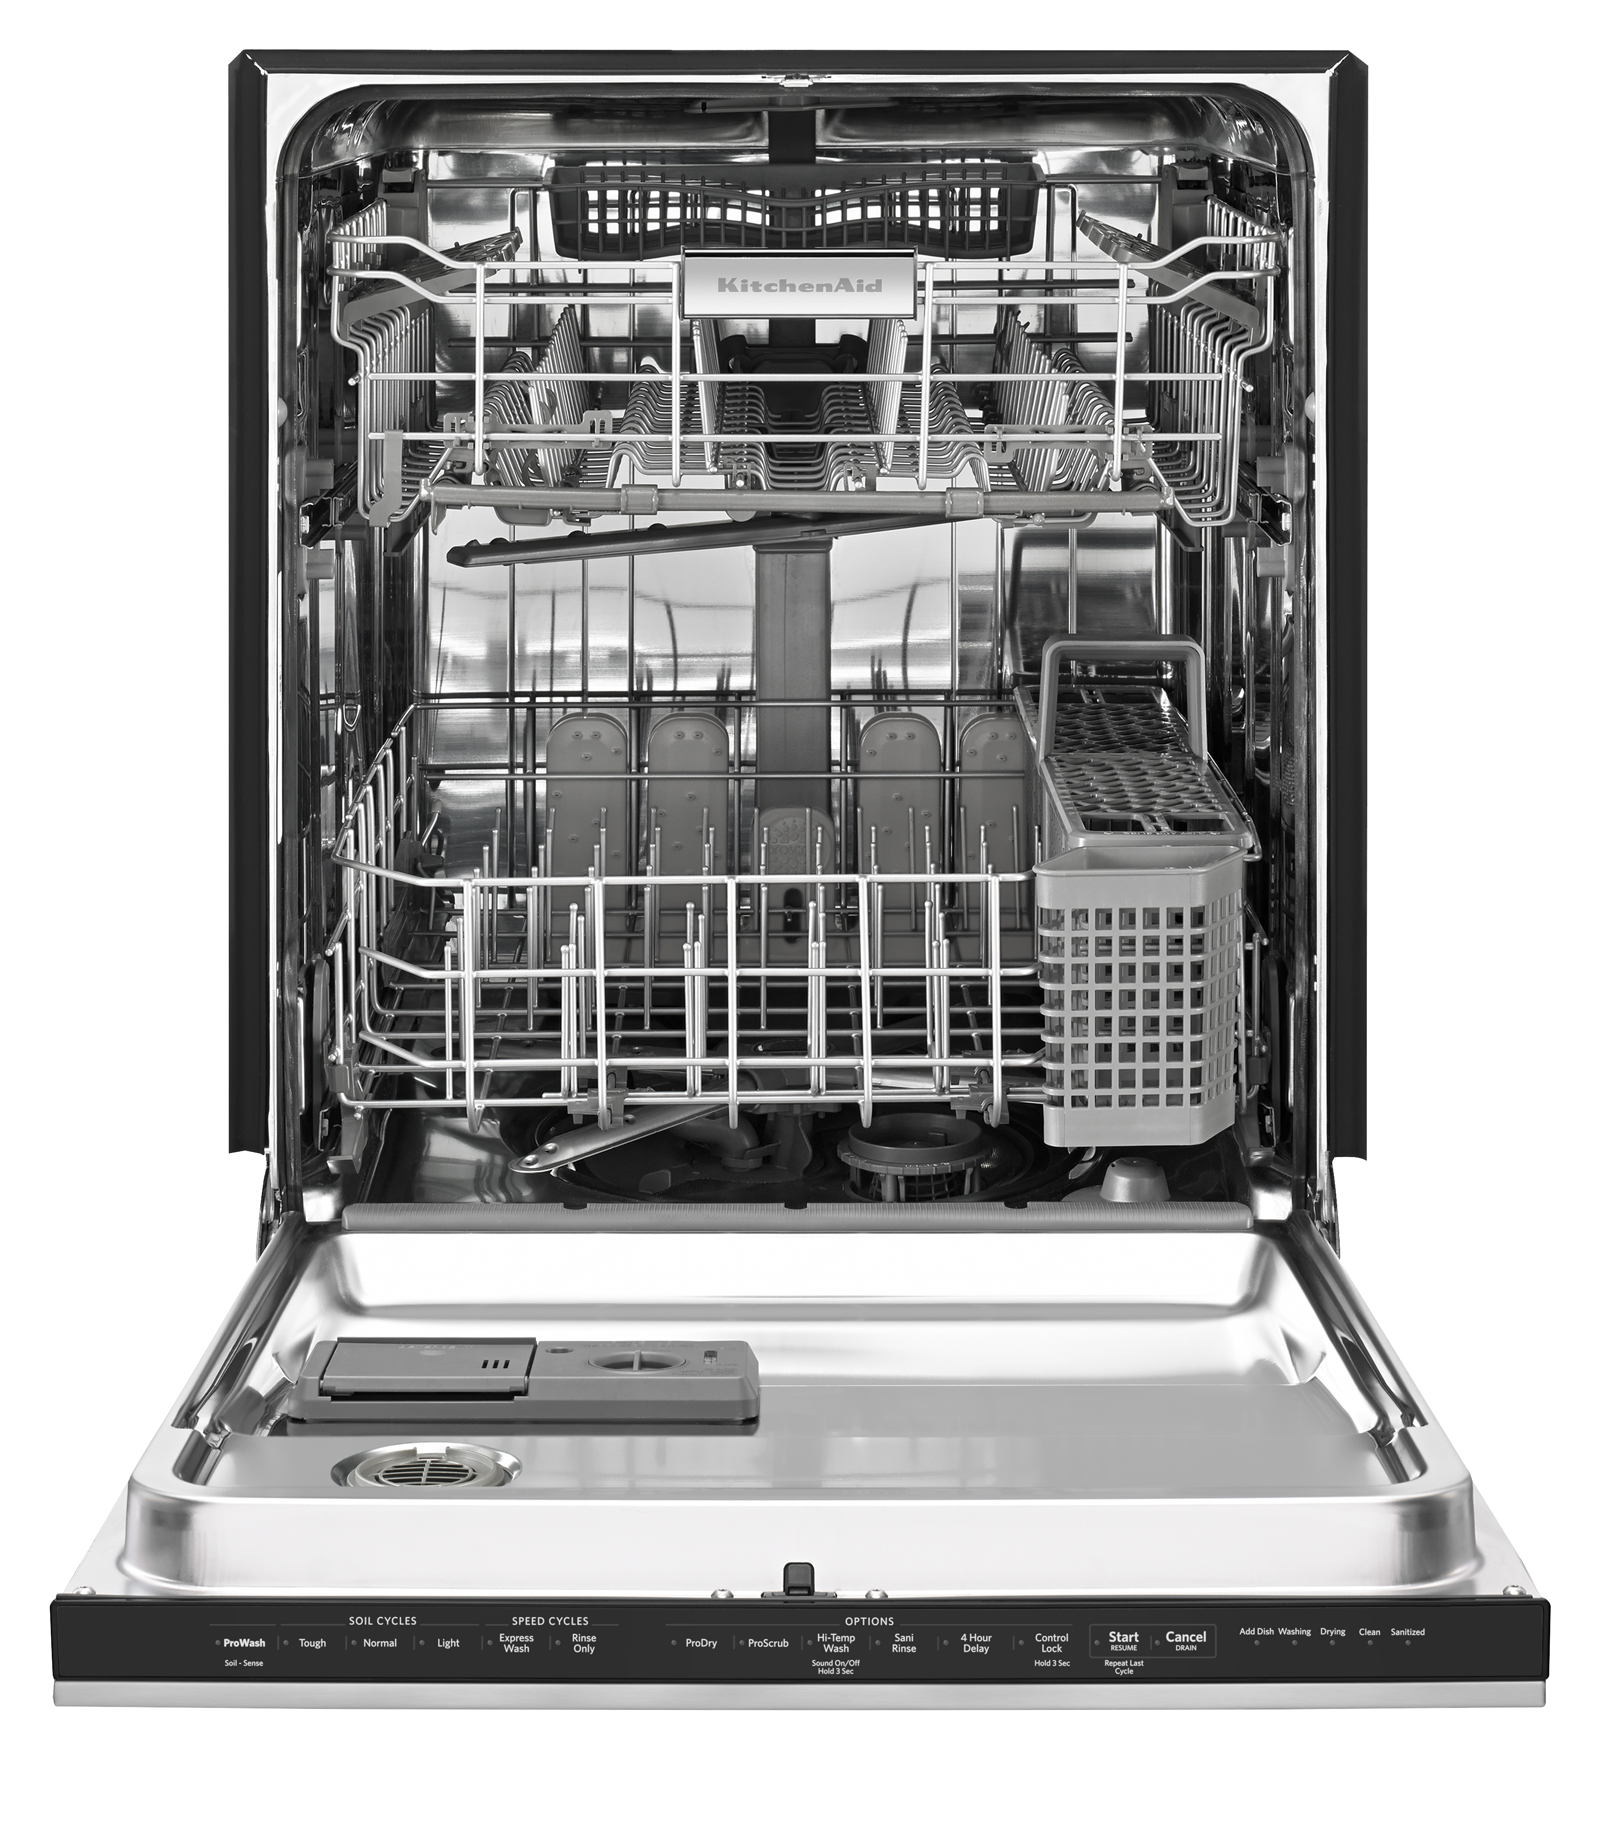 KitchenAid 24-in. Built-in Dishwasher w/ Ultra Handle and Concealed Controls - Stainless Steel